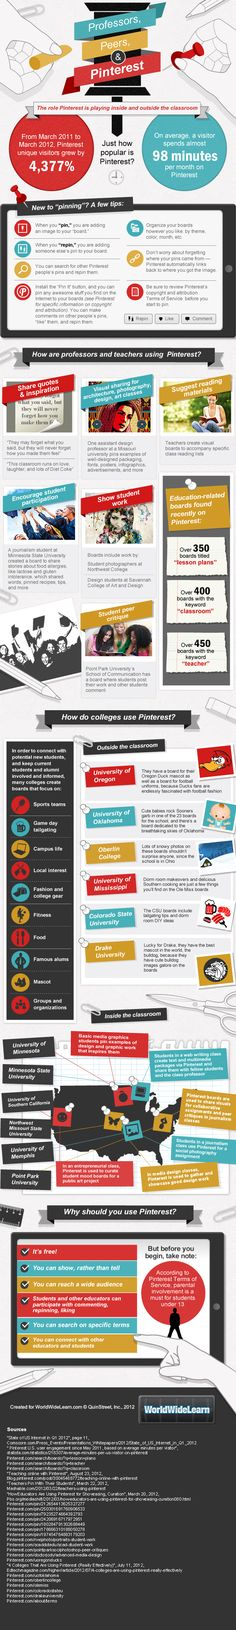 Professors, Peers, and Pinterest   Love it!  Pinning a graphic for education about pinning for education.